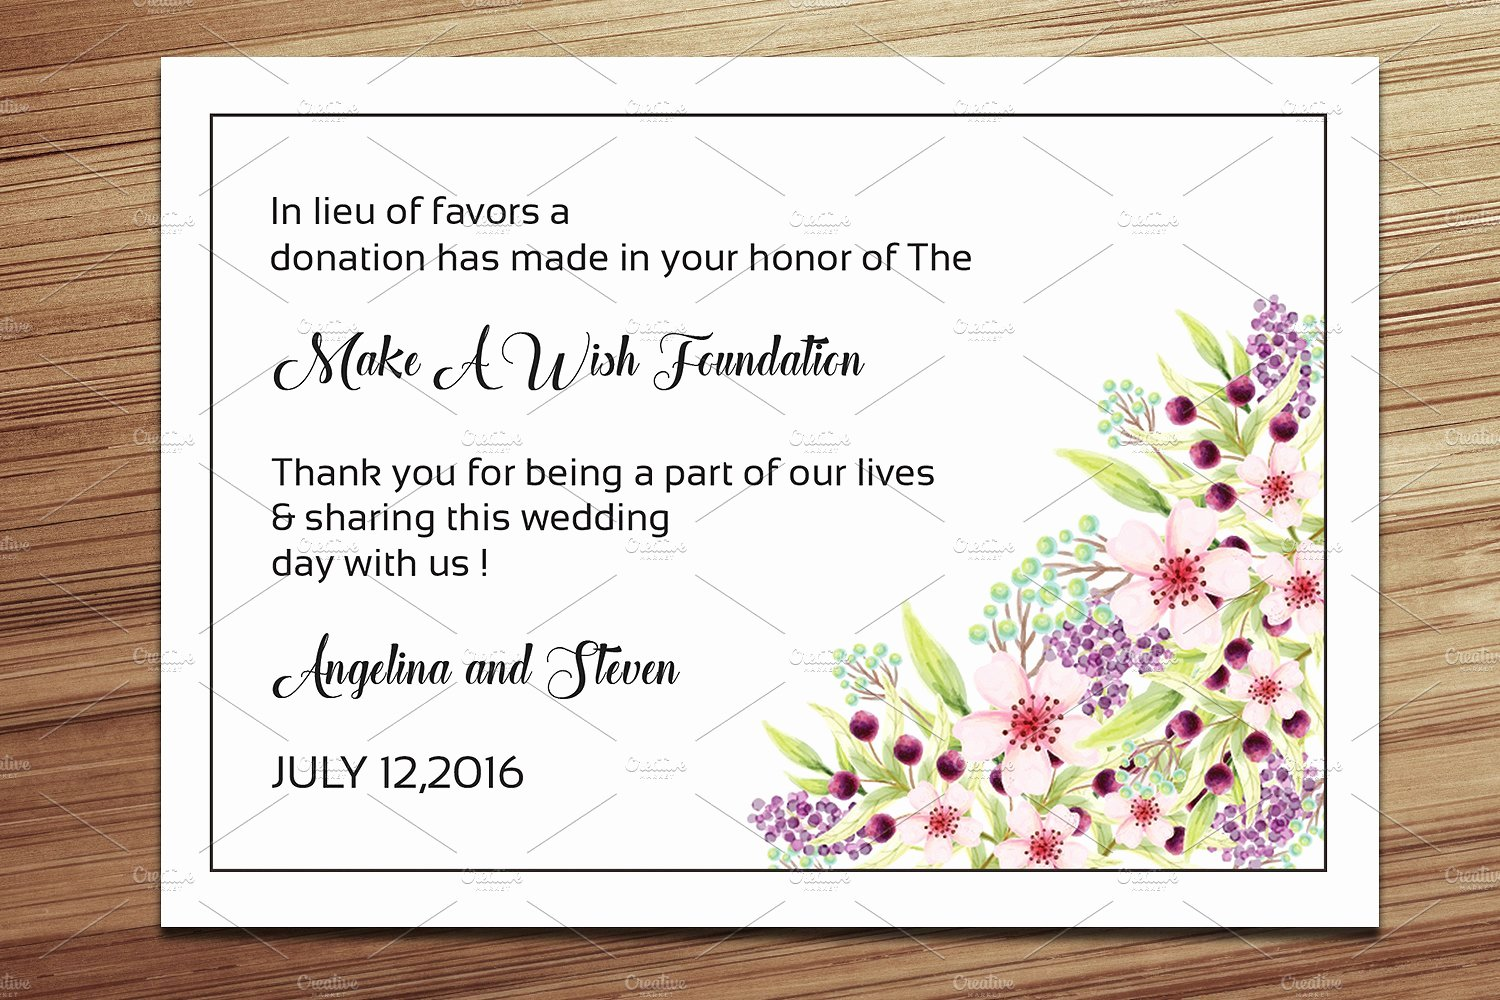 Non Profit Donation Card Template Beautiful Wedding Favor Donation Card Template Card Templates